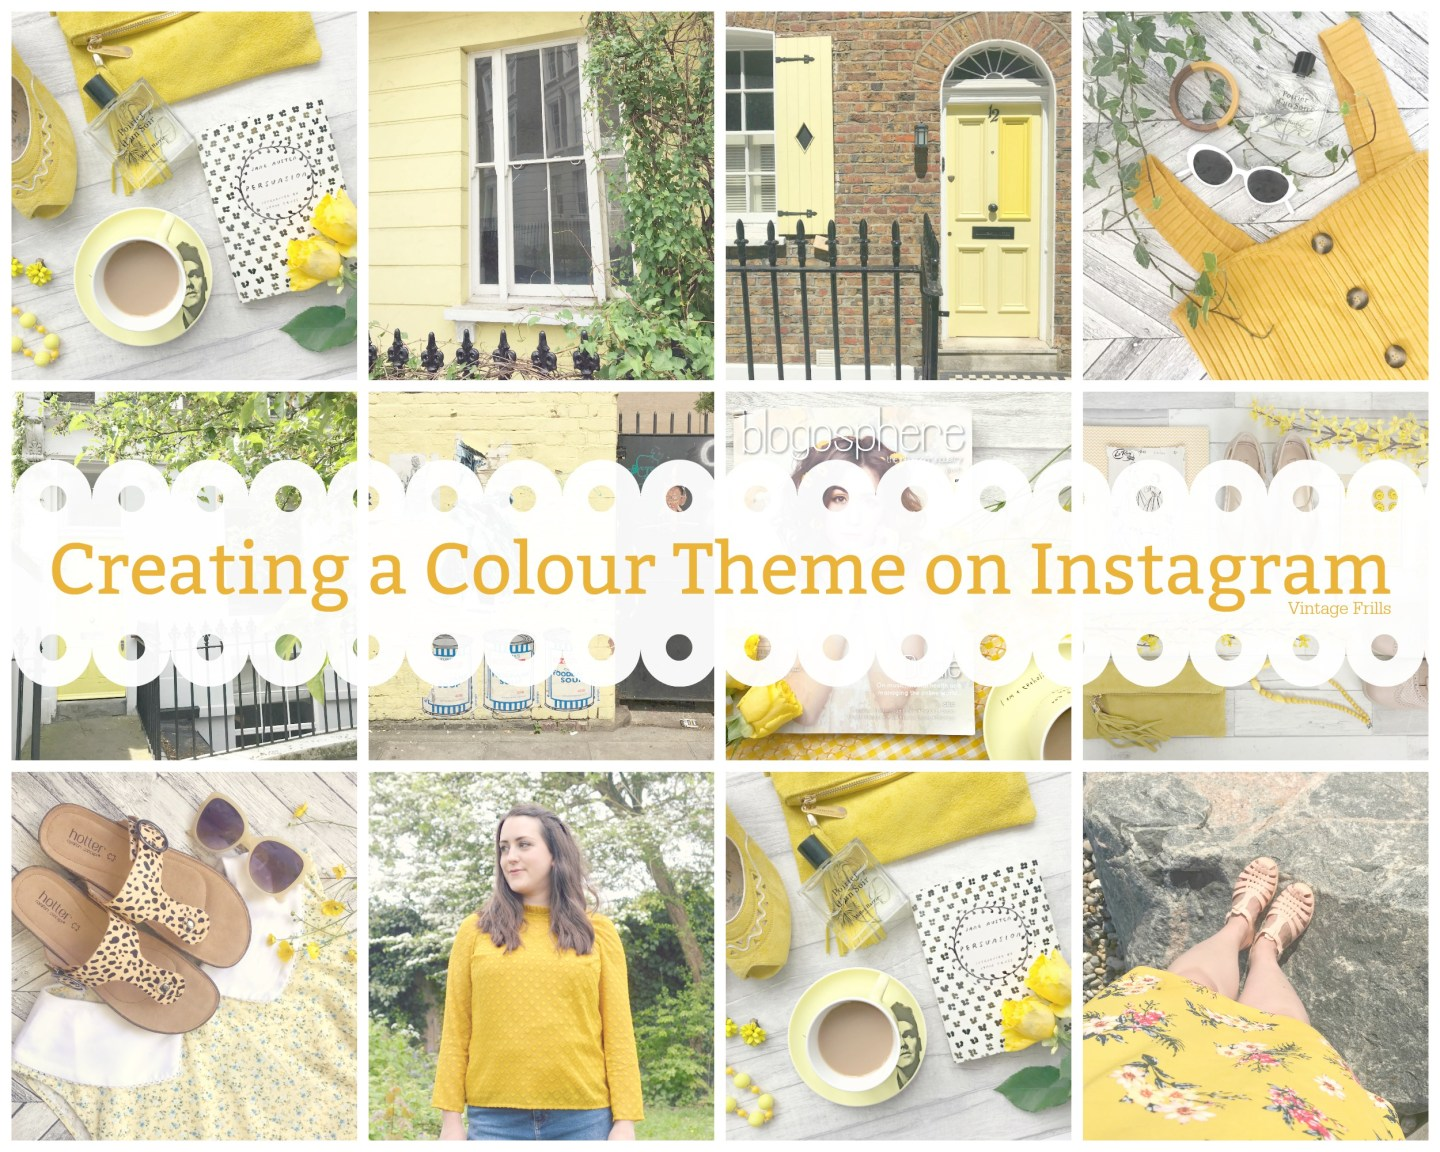 Blogging Tips – Having a Colour Theme on Instagram